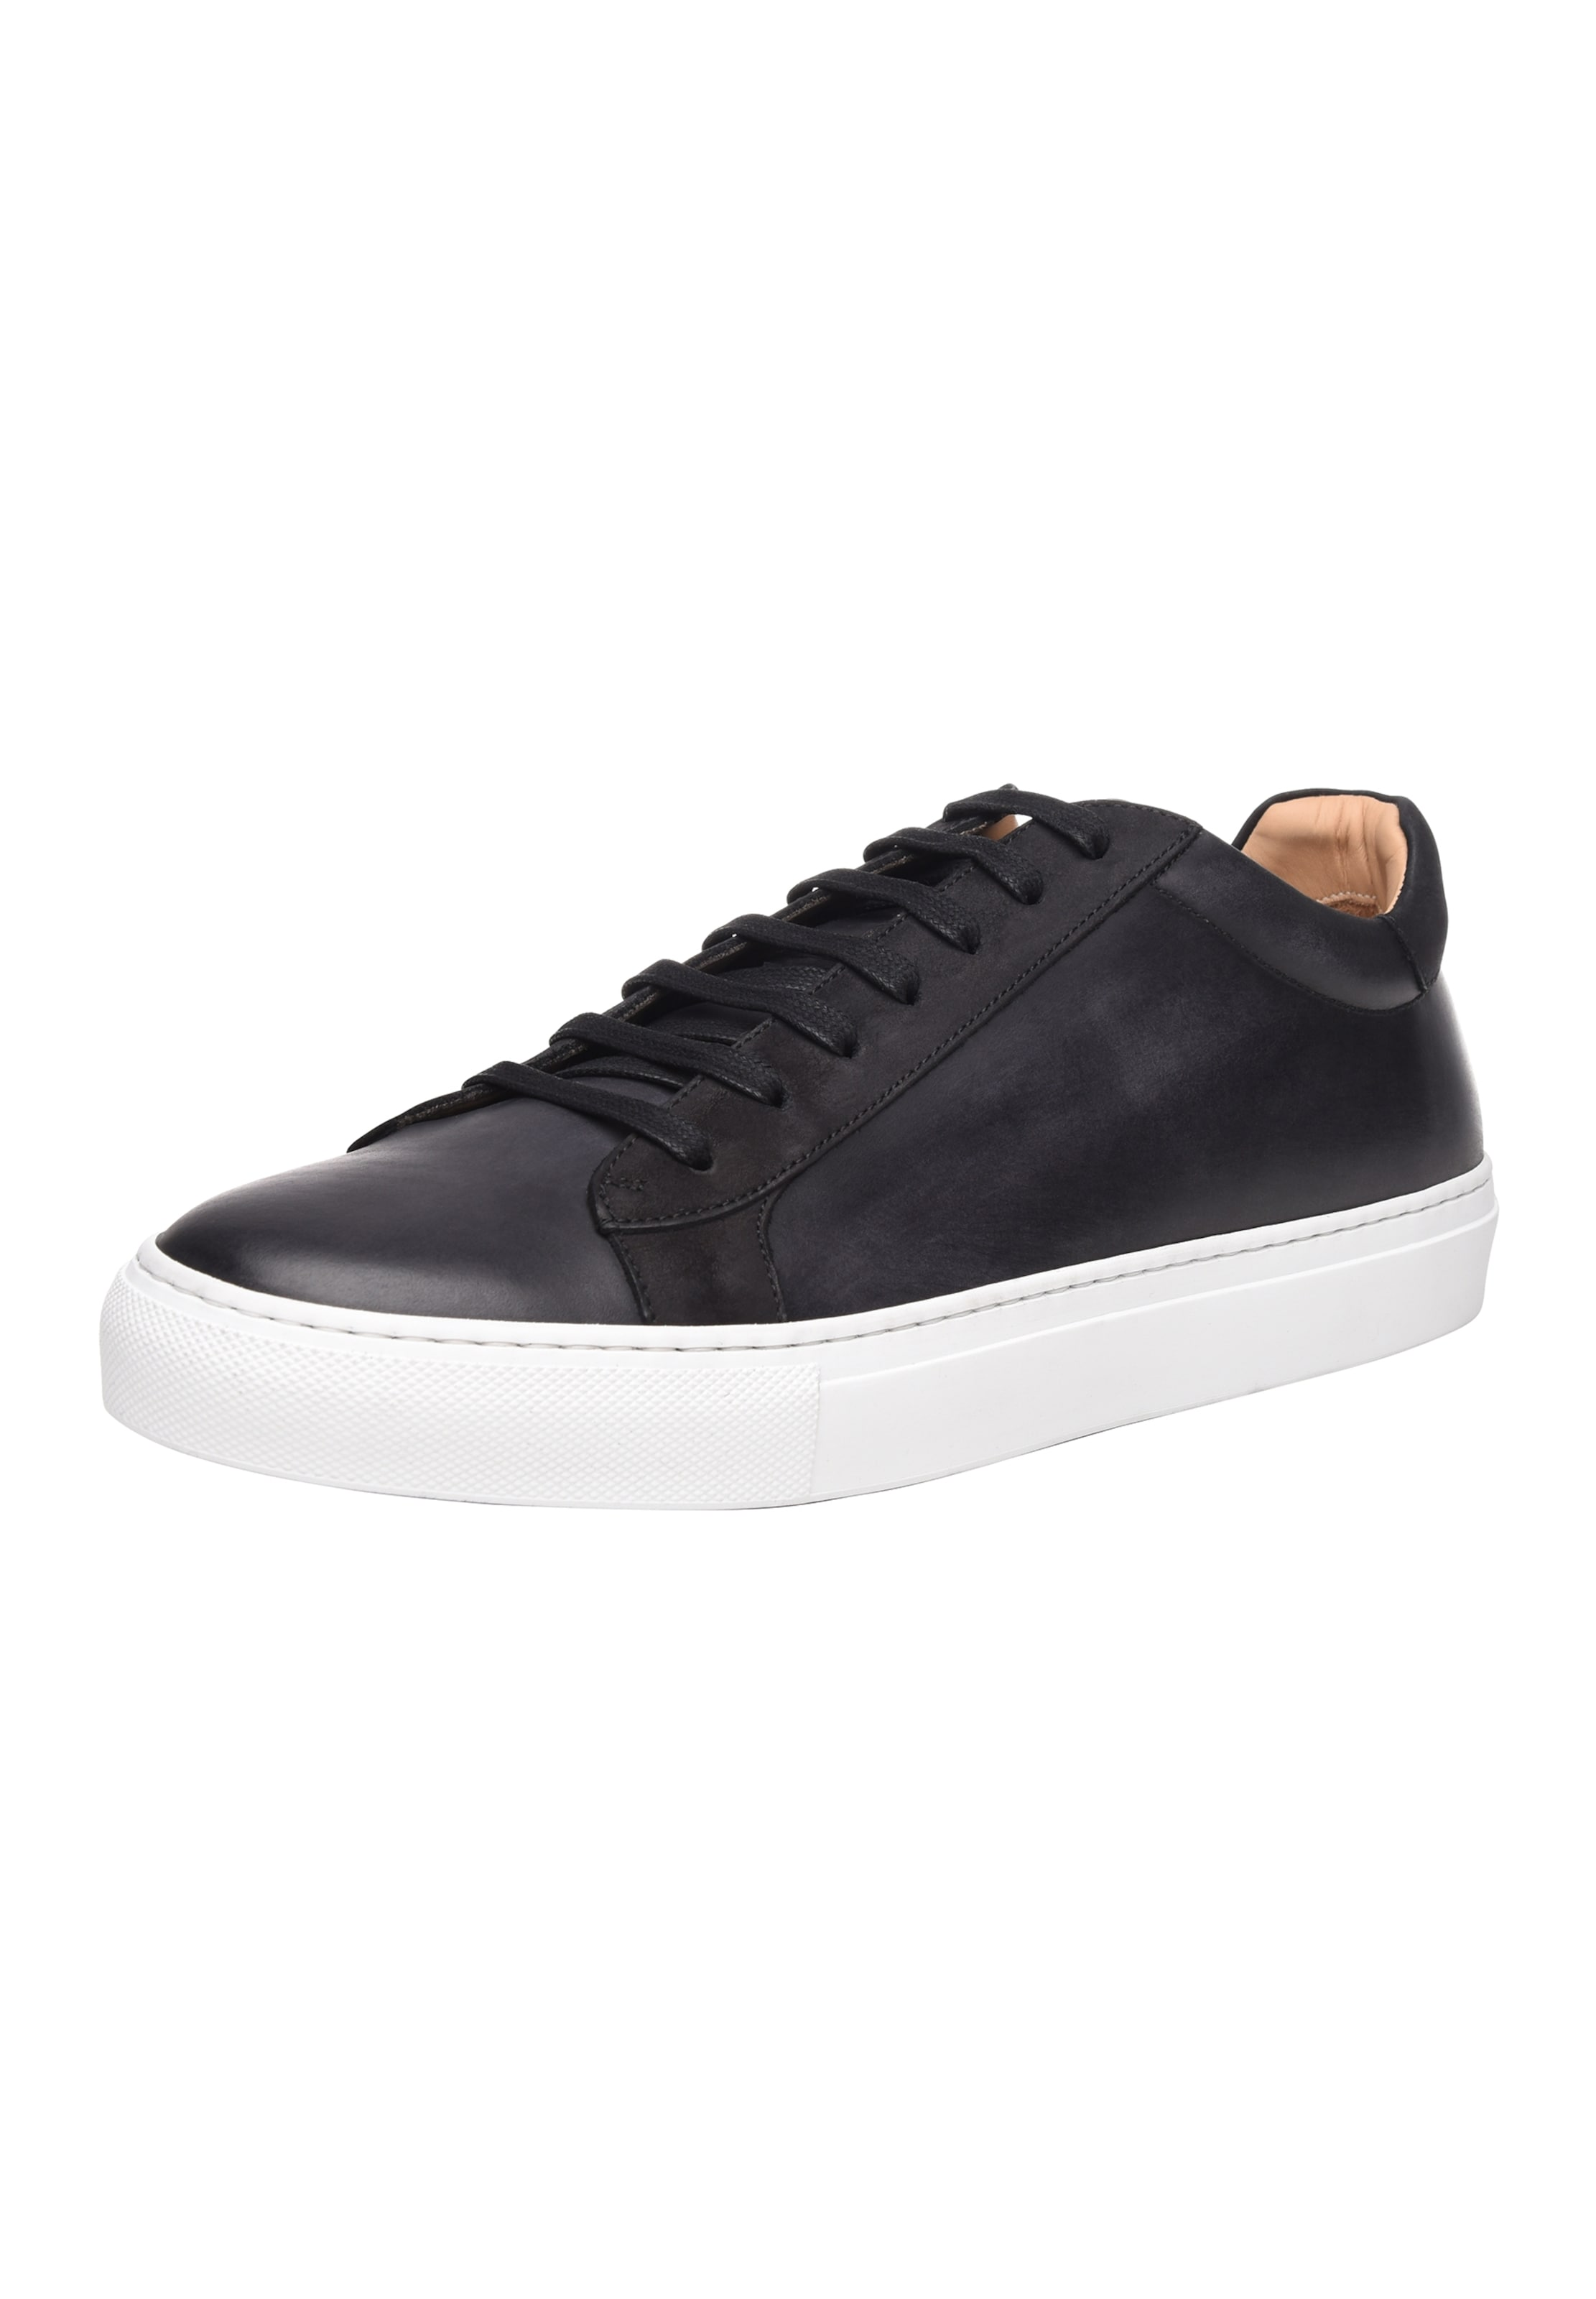 Shoepassion In Sneaker Schwarz Sneaker Schwarz In Shoepassion 3RAq54jL